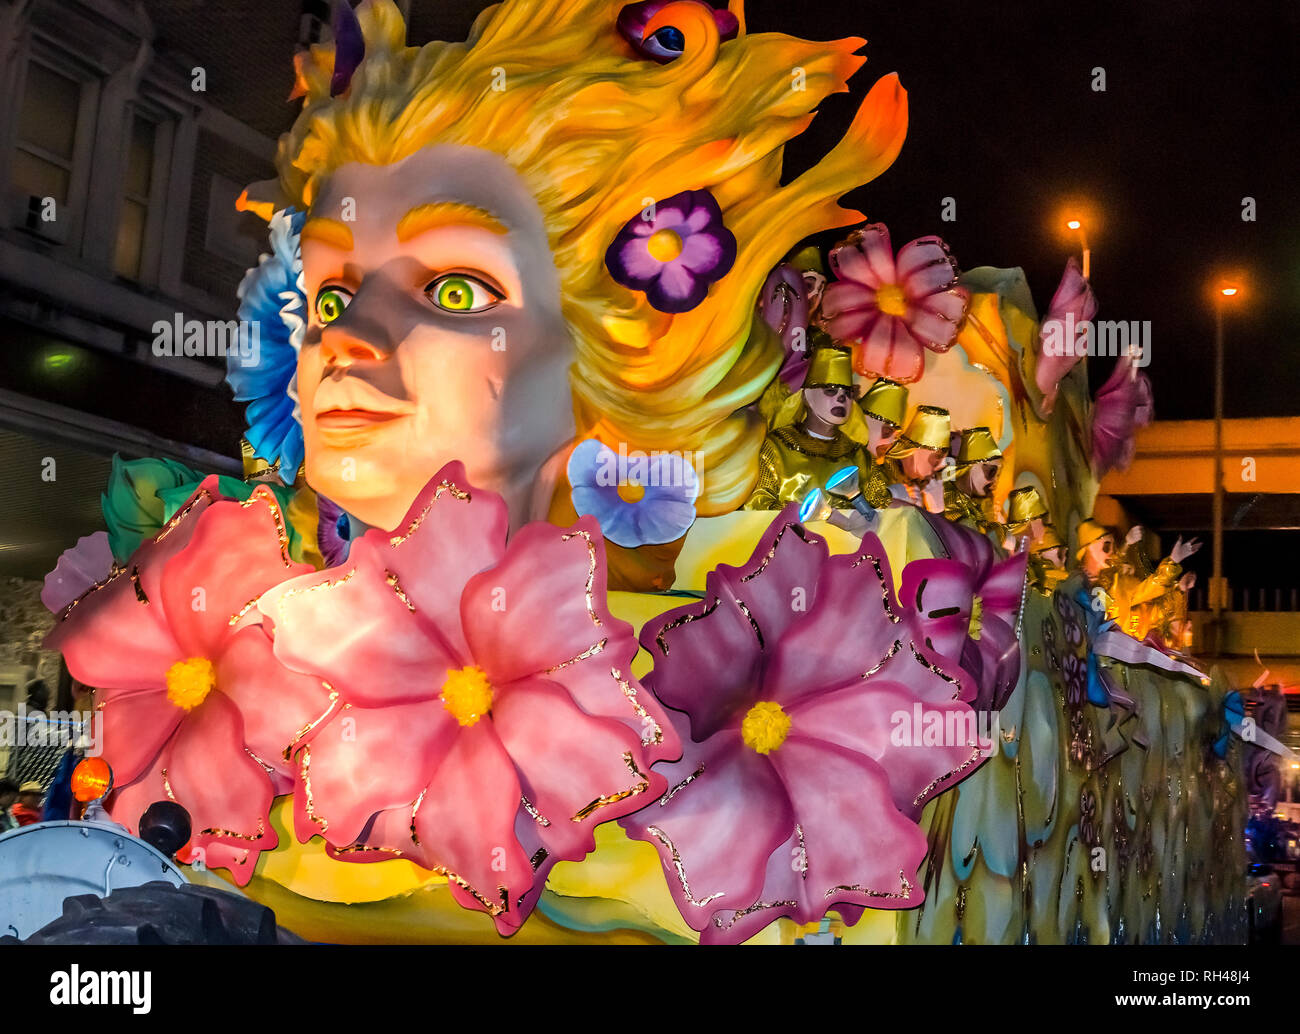 A float rolls down St. Charles Avenue at the Krewe of Hermes Mardi Gras parade at Lee Circle, Feb. 28, 2014, in New Orleans, Louisiana. Stock Photo